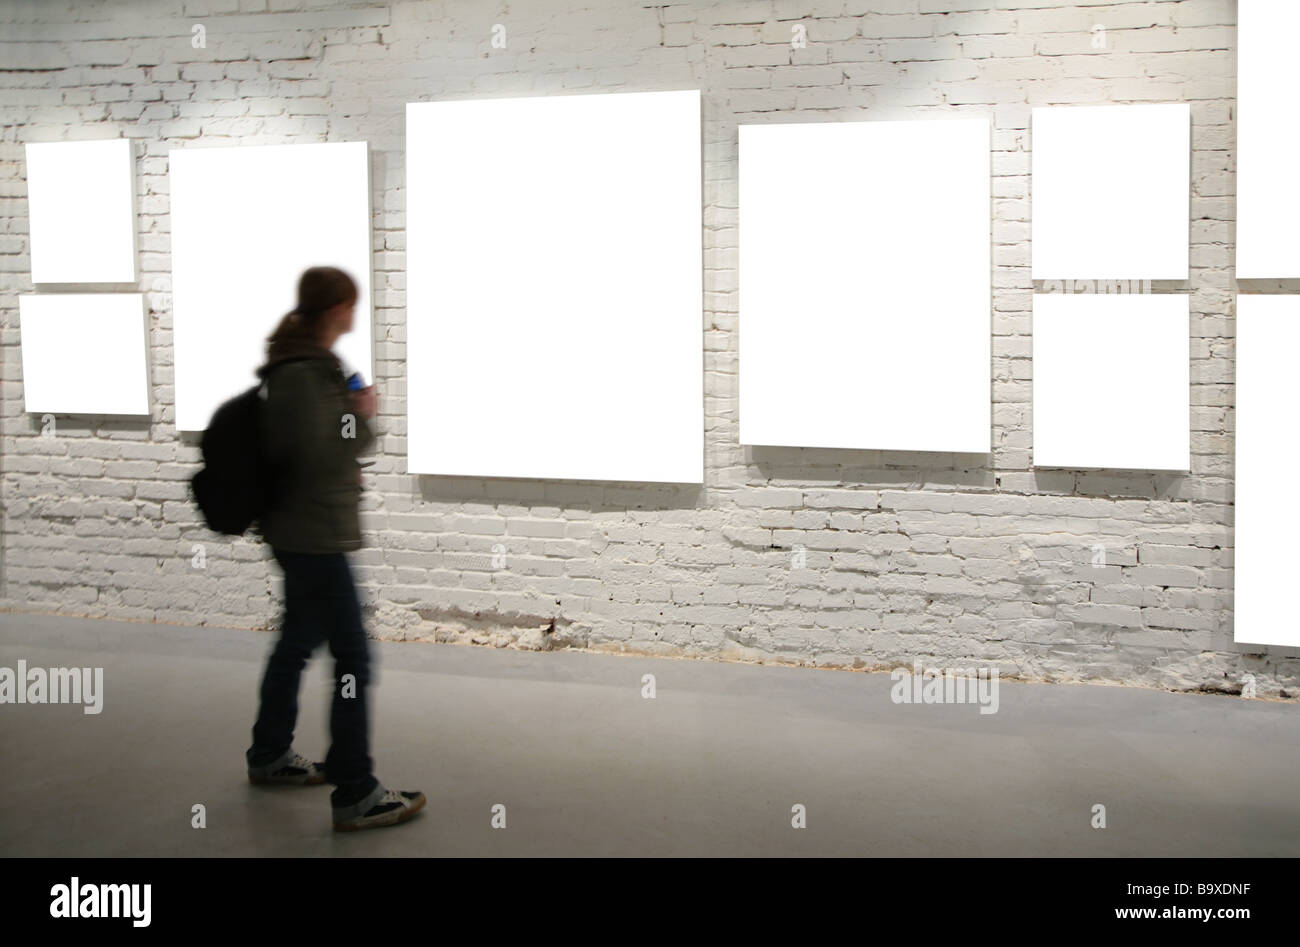 Wall Picture Frames Stockfotos & Wall Picture Frames Bilder - Alamy